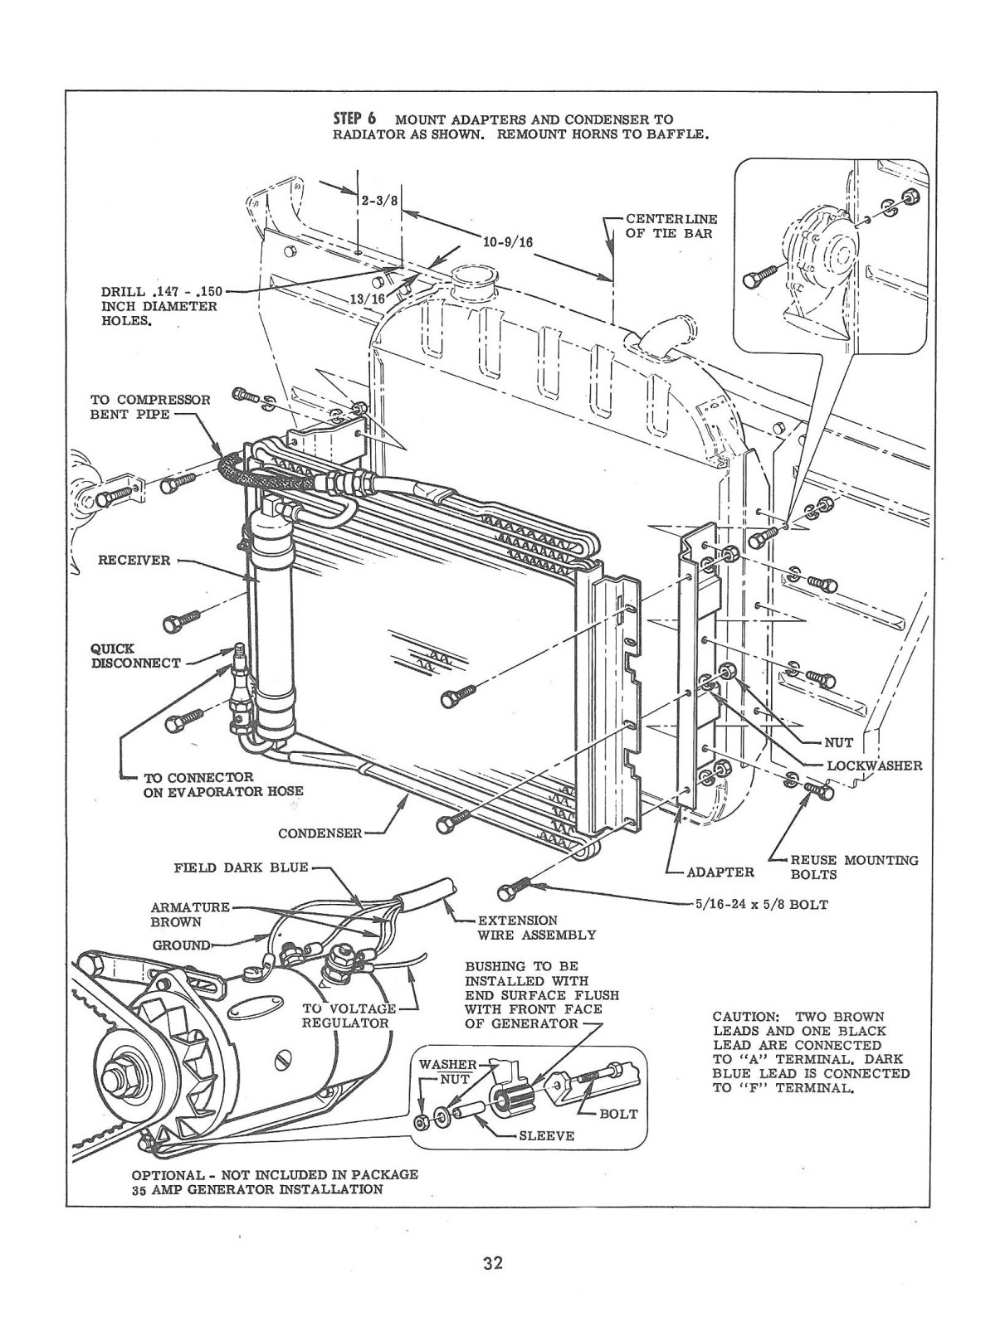 Pin By Roberto Garcia On Chevrolet 1957 Truck Accessories Cars Trucks 1957 Chevrolet